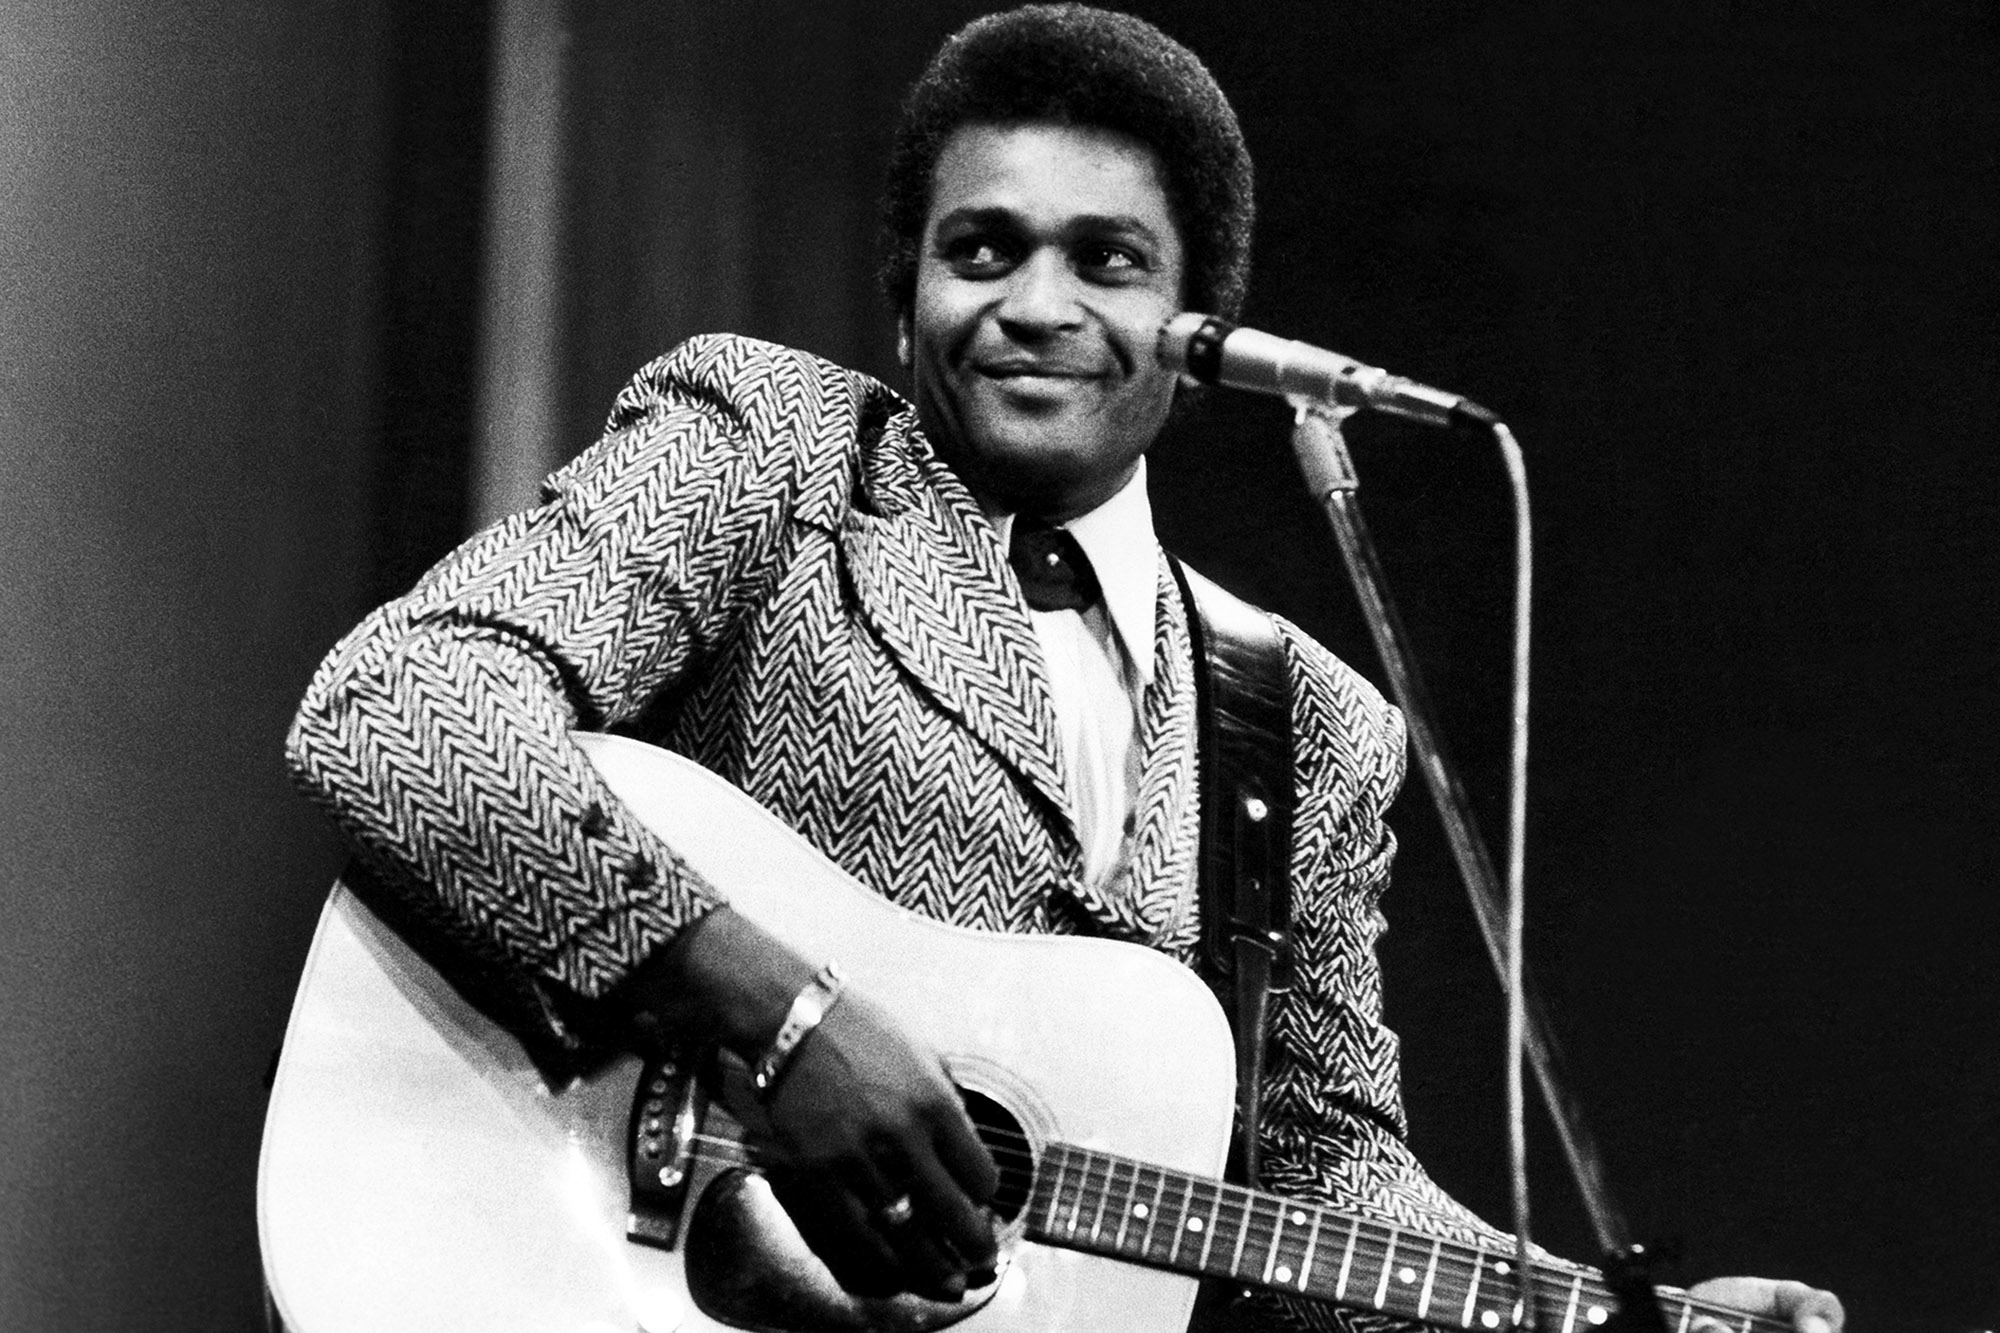 Charley Pride, 1st black country music star, dead of COVID-19 at 86